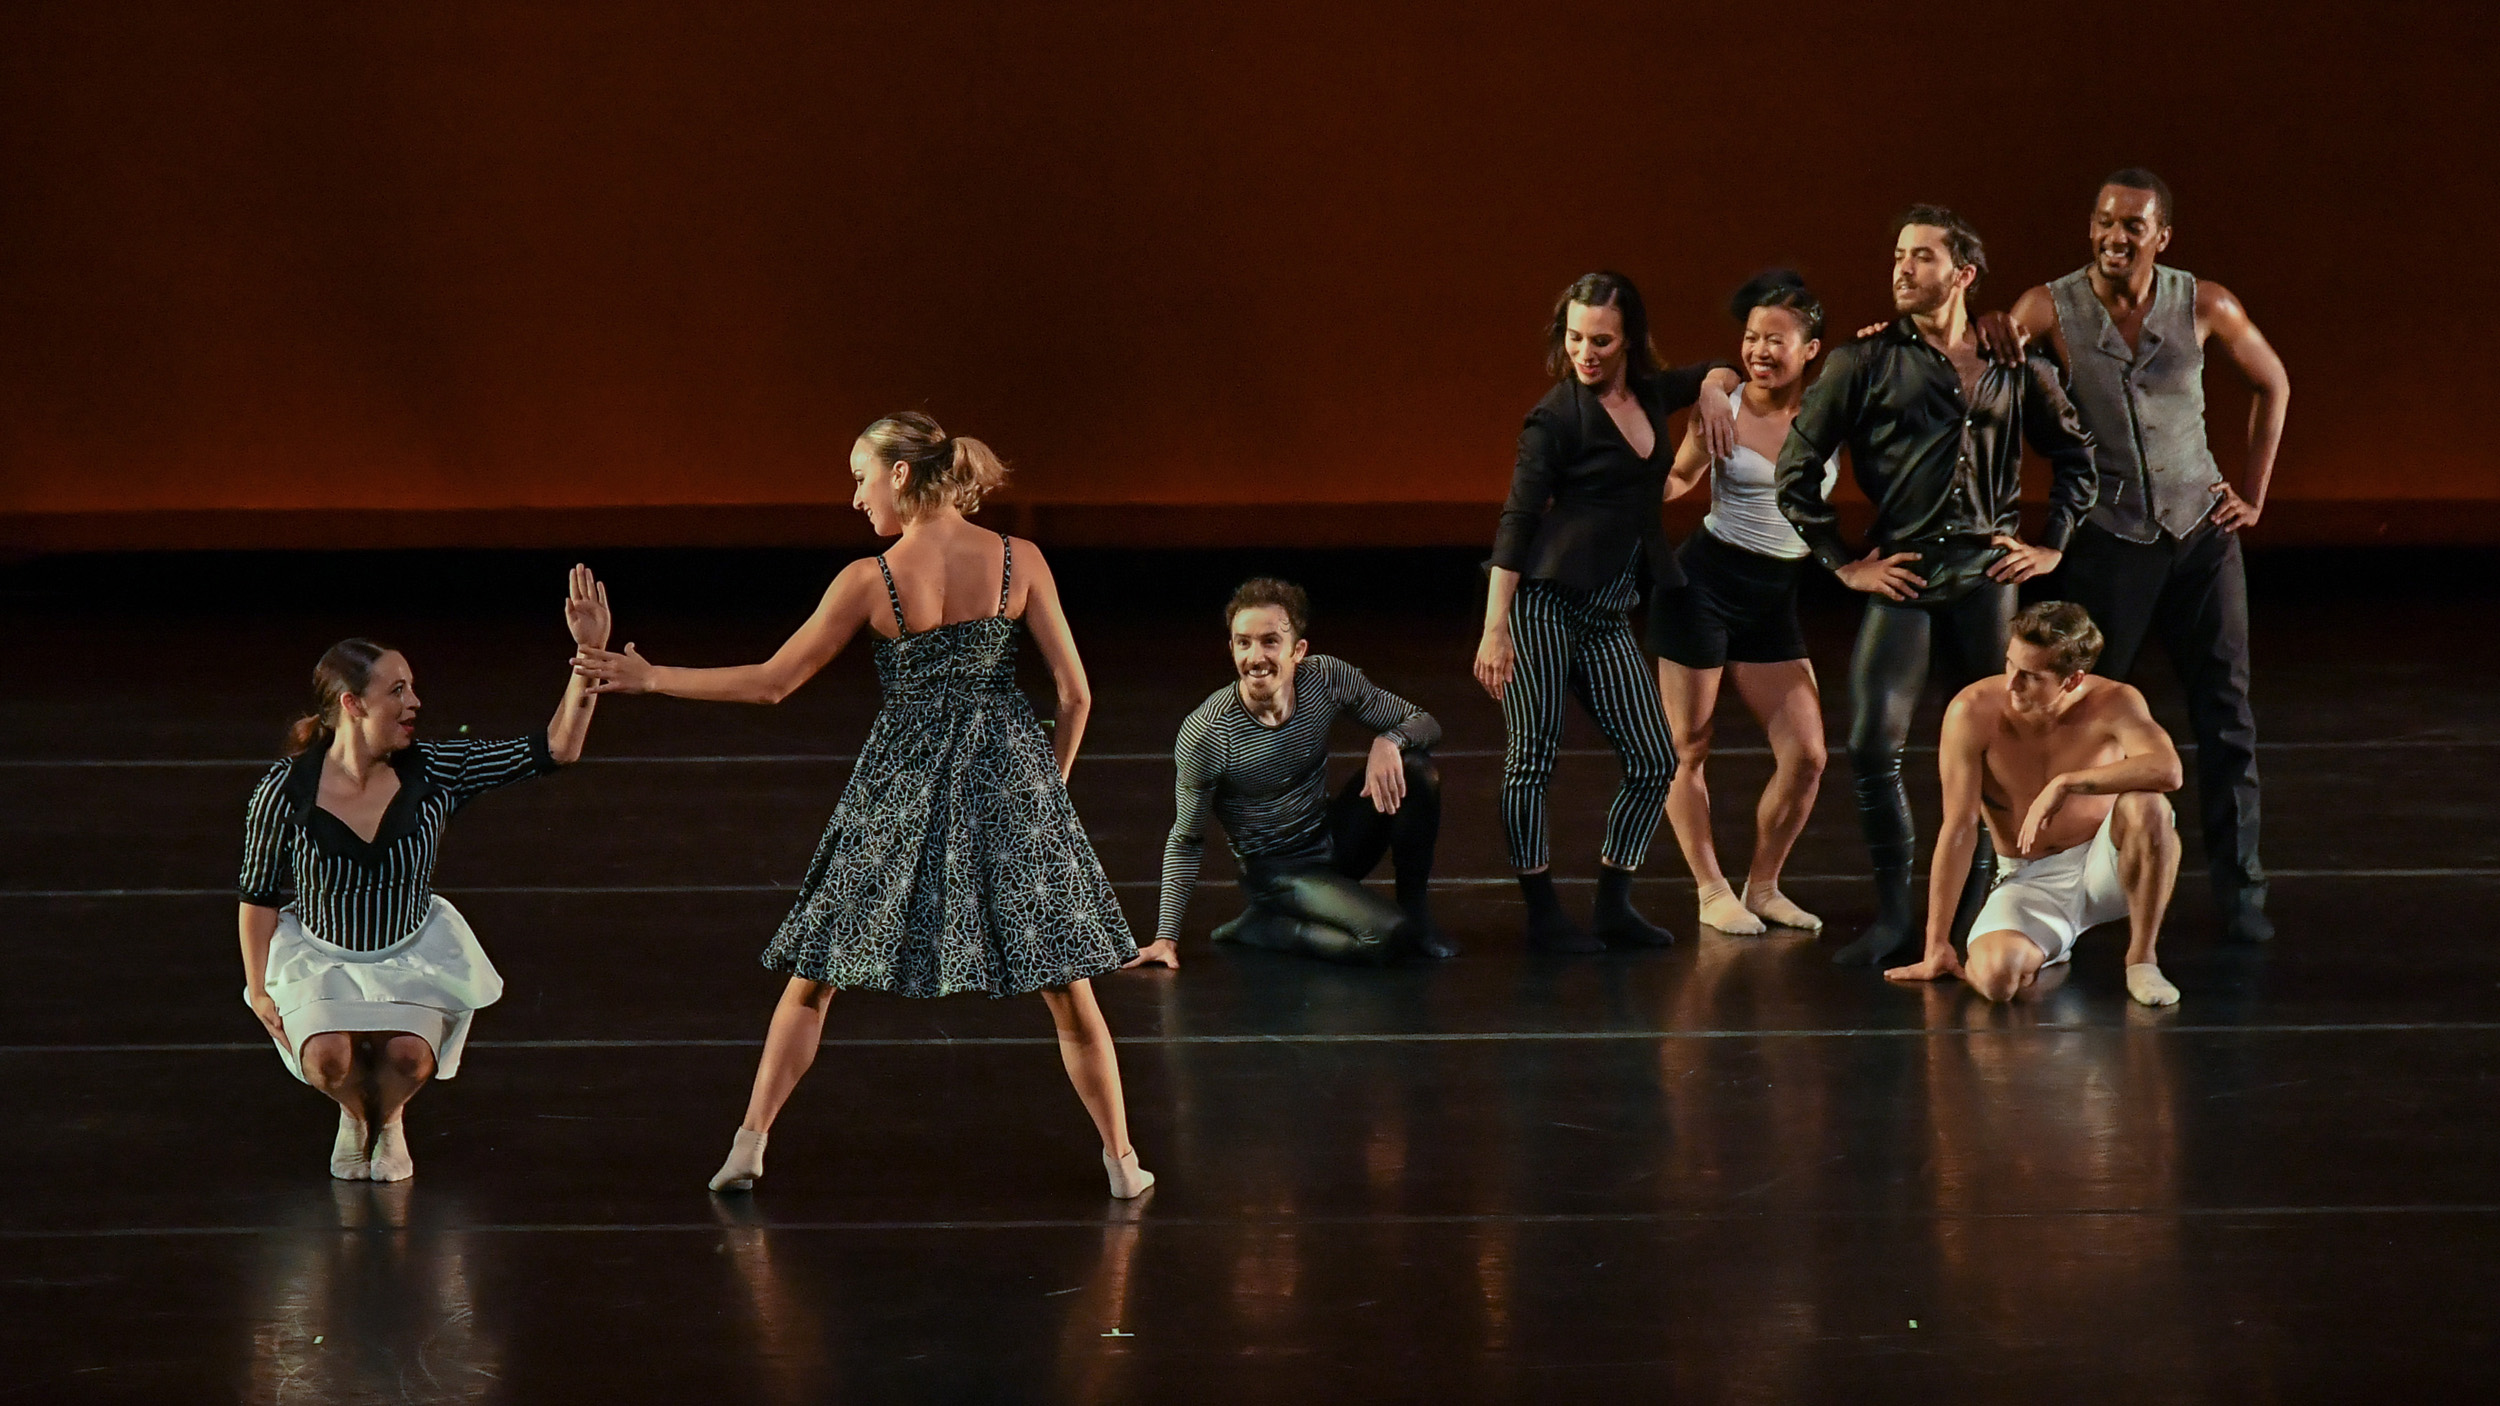 BODYTRAFFIC performing at the Wallis Annenberg Center for the Performing Arts May 31, 2018. A Million Voices (World Premiere). Choreography: Matthew Neenan. (l-r) Haley Heckethorn, Natalie Leibert, Guzmán Rosado, Tina Finkelman Berkett, Jessica Liu, Joseph Davis, Lorrin Brubaker, Jamal White. PHOTO CREDIT: Rob Latour.